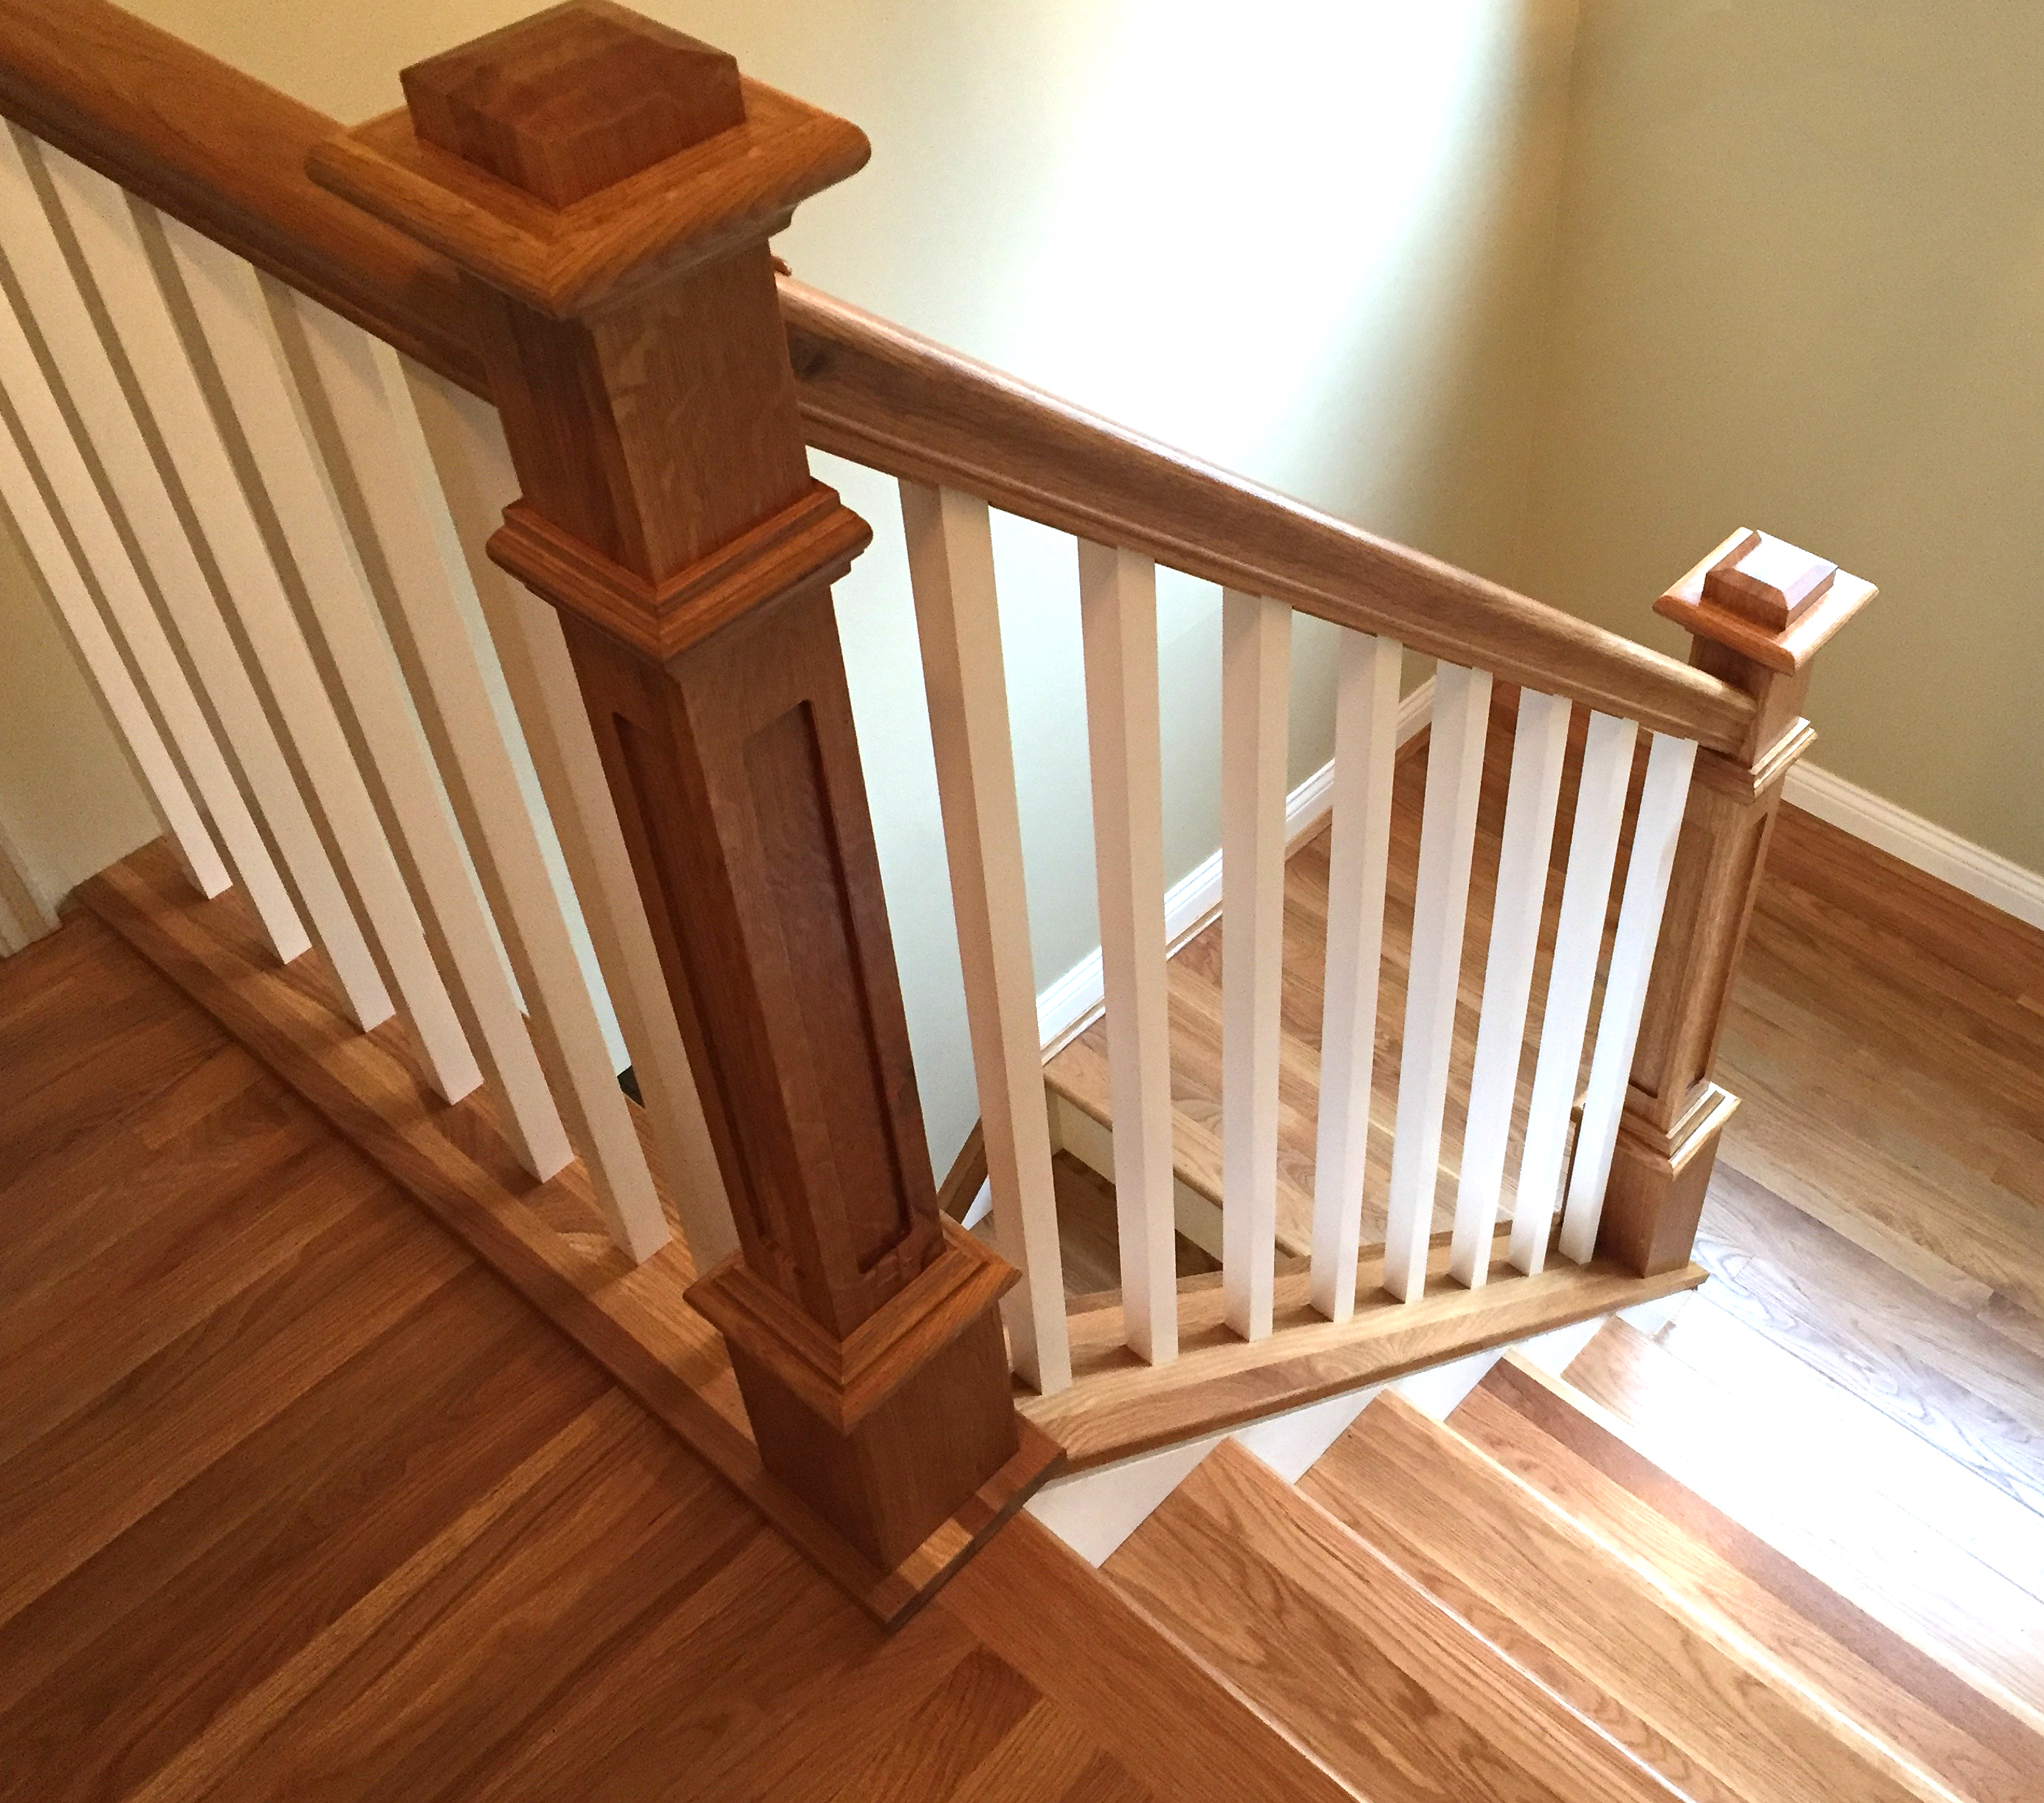 Design Handrails For Stairs stair parts handrails railing balusters treads newels plowed handrail